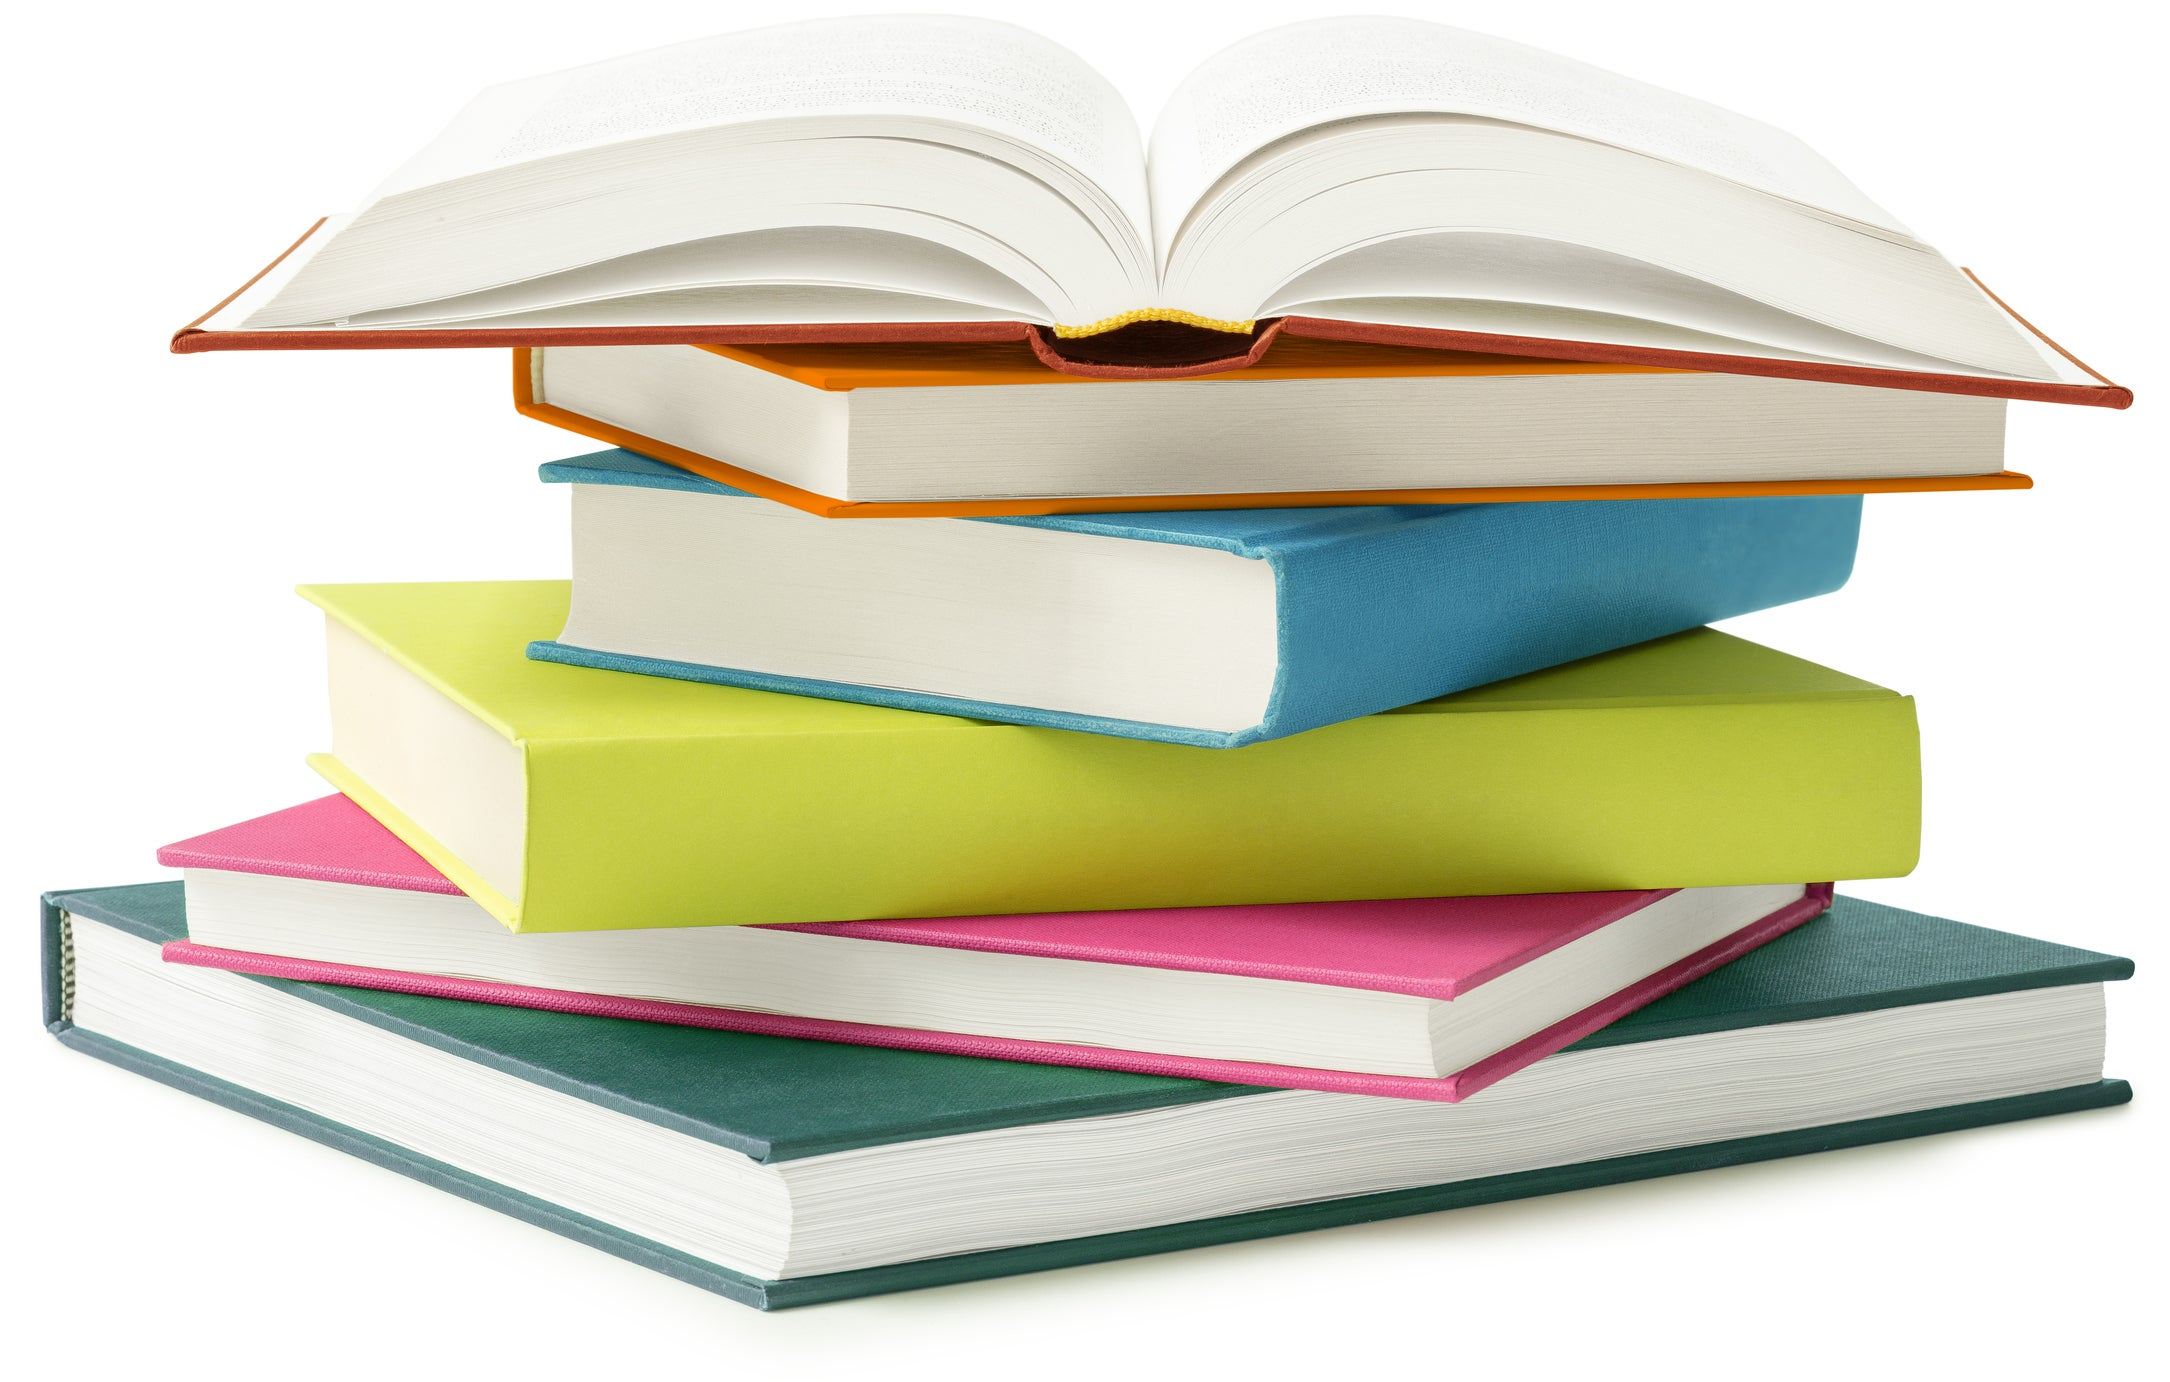 books stack open isolated library opening stacked publishing background file scholastic better paperback archives investing fool event